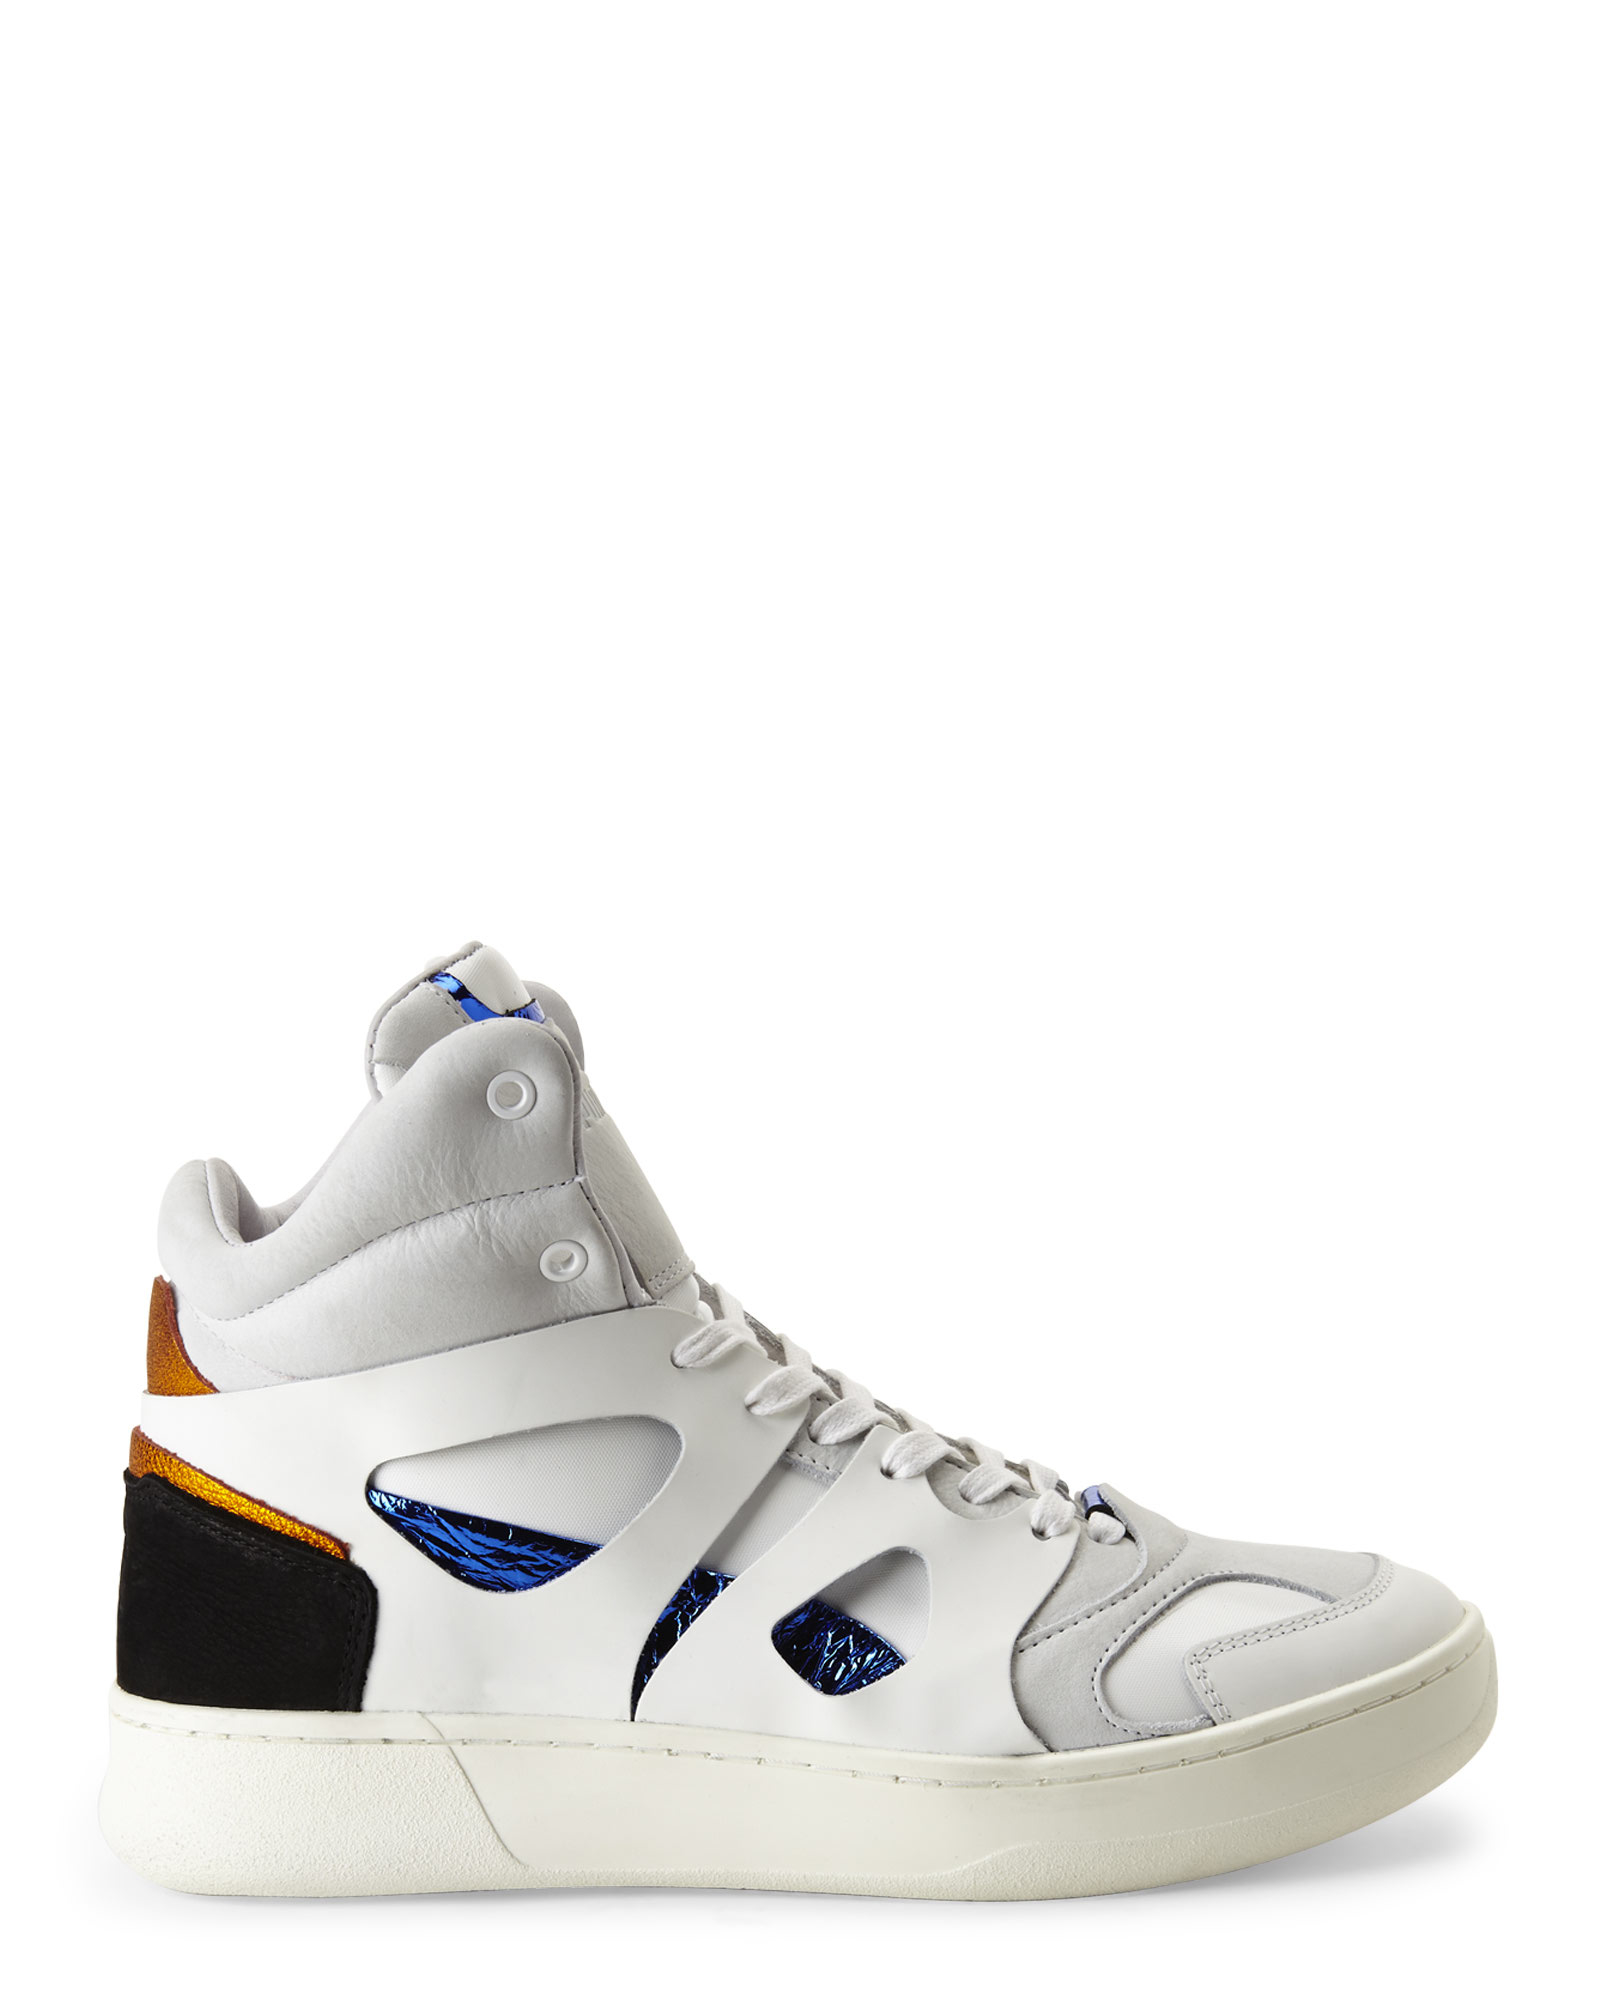 78c6775b7365 Lyst - PUMA X Mcq By Alexander Mcqueen White Mid Move Sneakers for Men